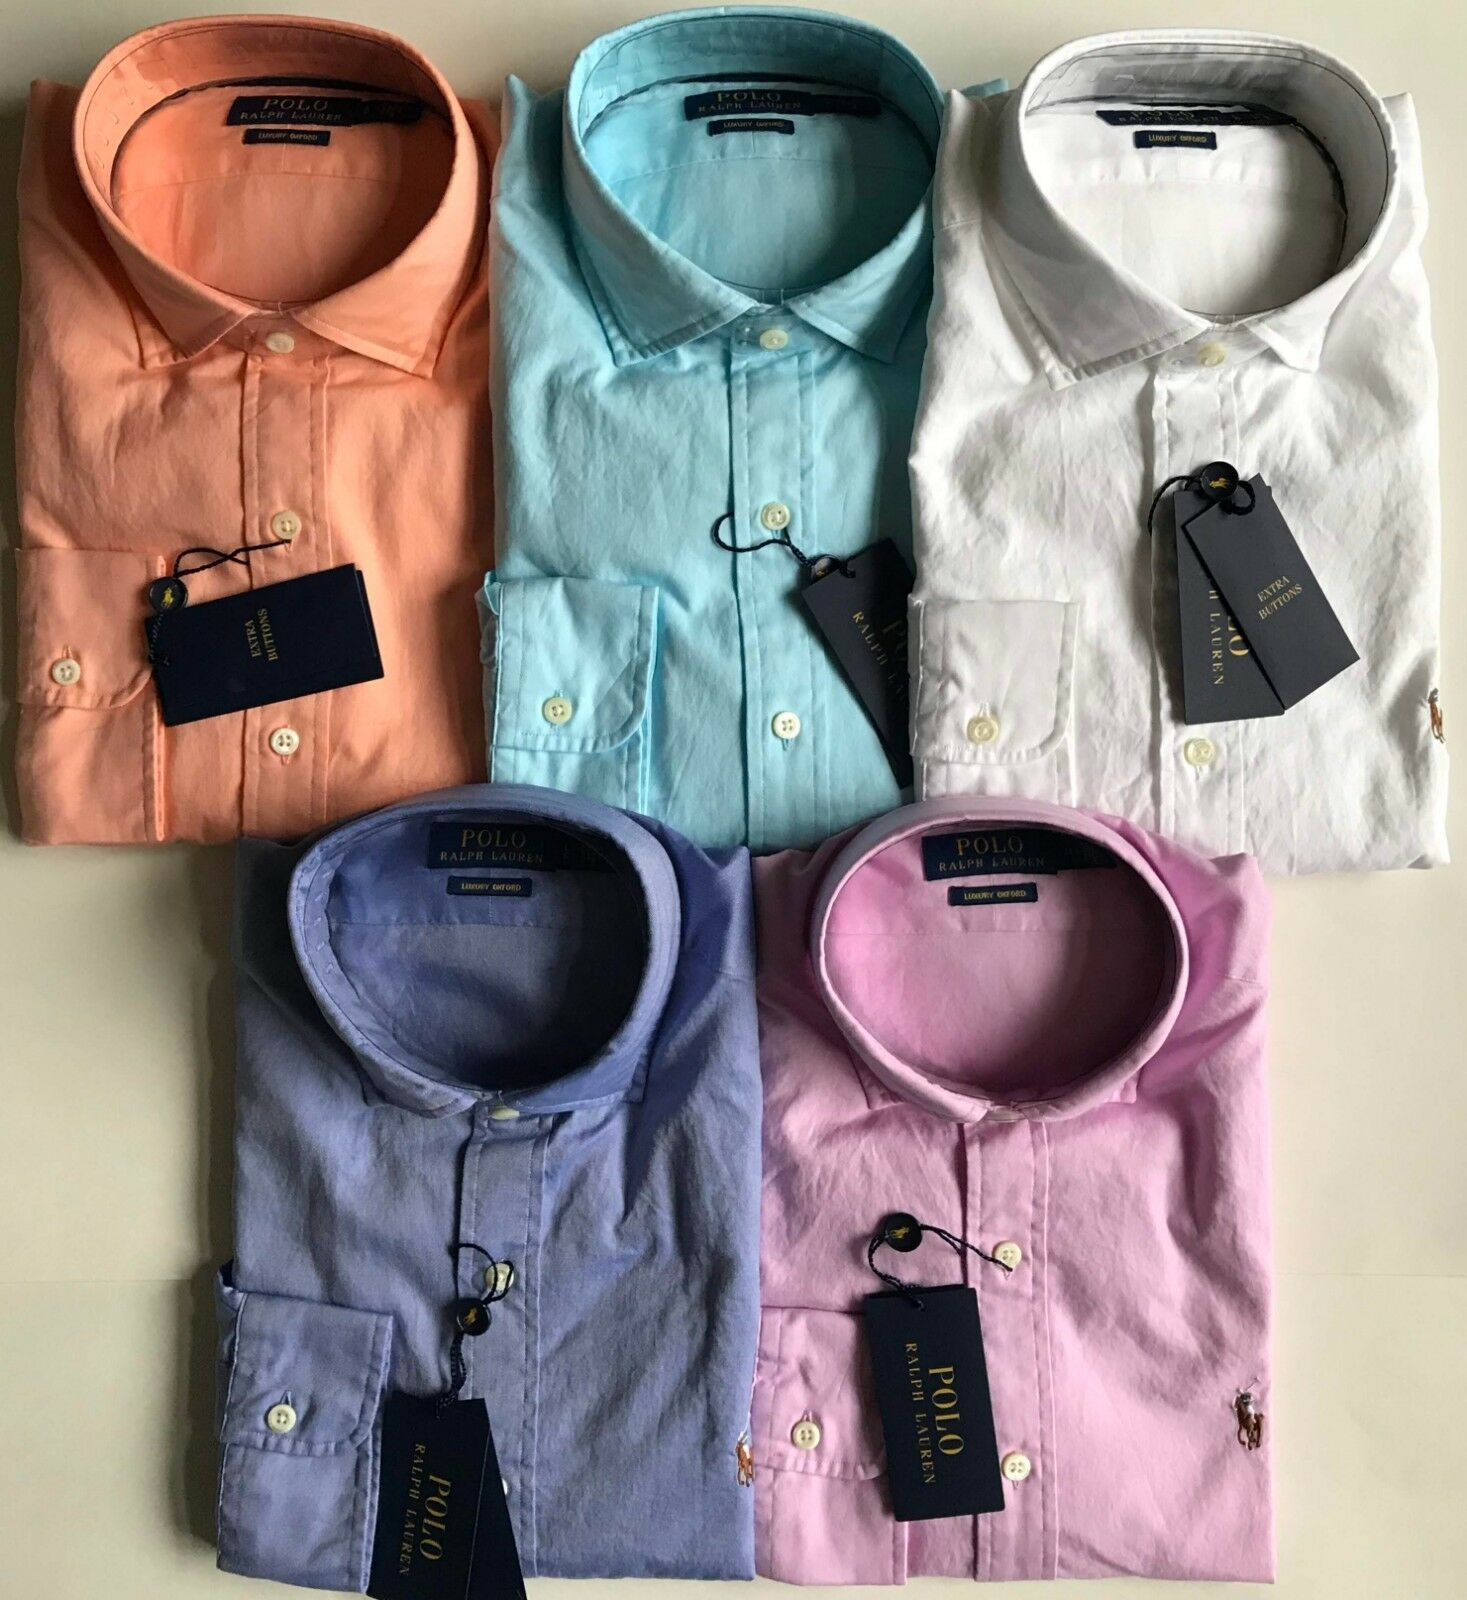 acde5938d NWT Mens Polo Ralph Lauren Solid Luxury Oxford Long Sleeve Woven BD Shirt